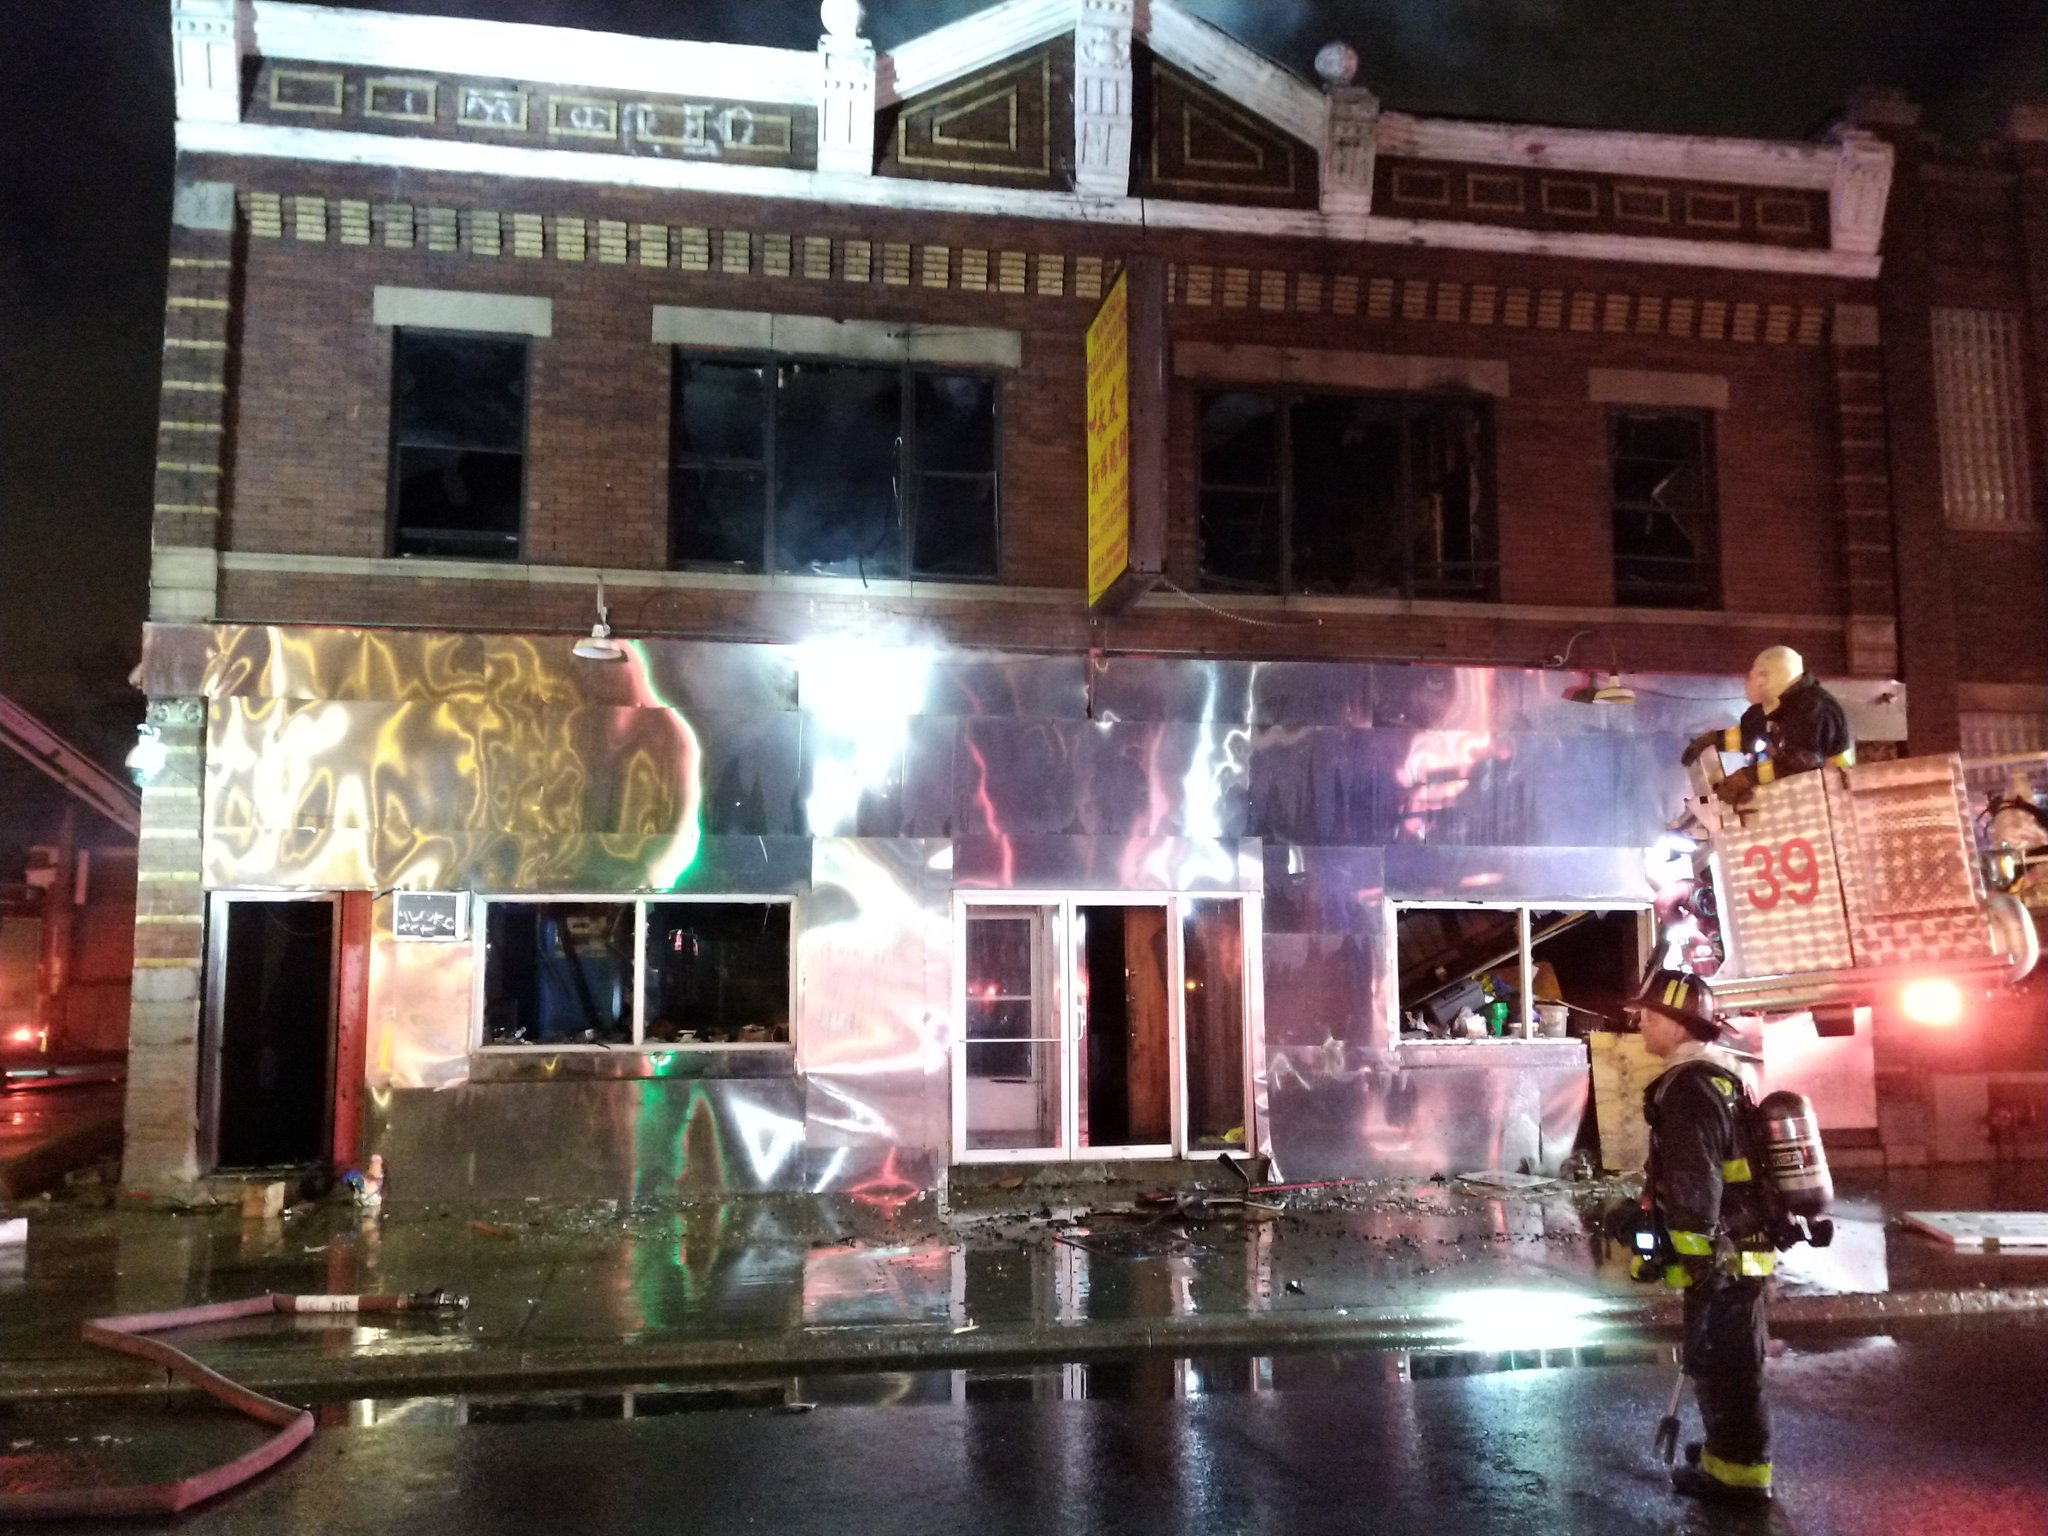 A Chicago firefighter was injured while battling an extra-alarm blaze March 21, 2020, in the 3700 block of South Ashland Avenue.